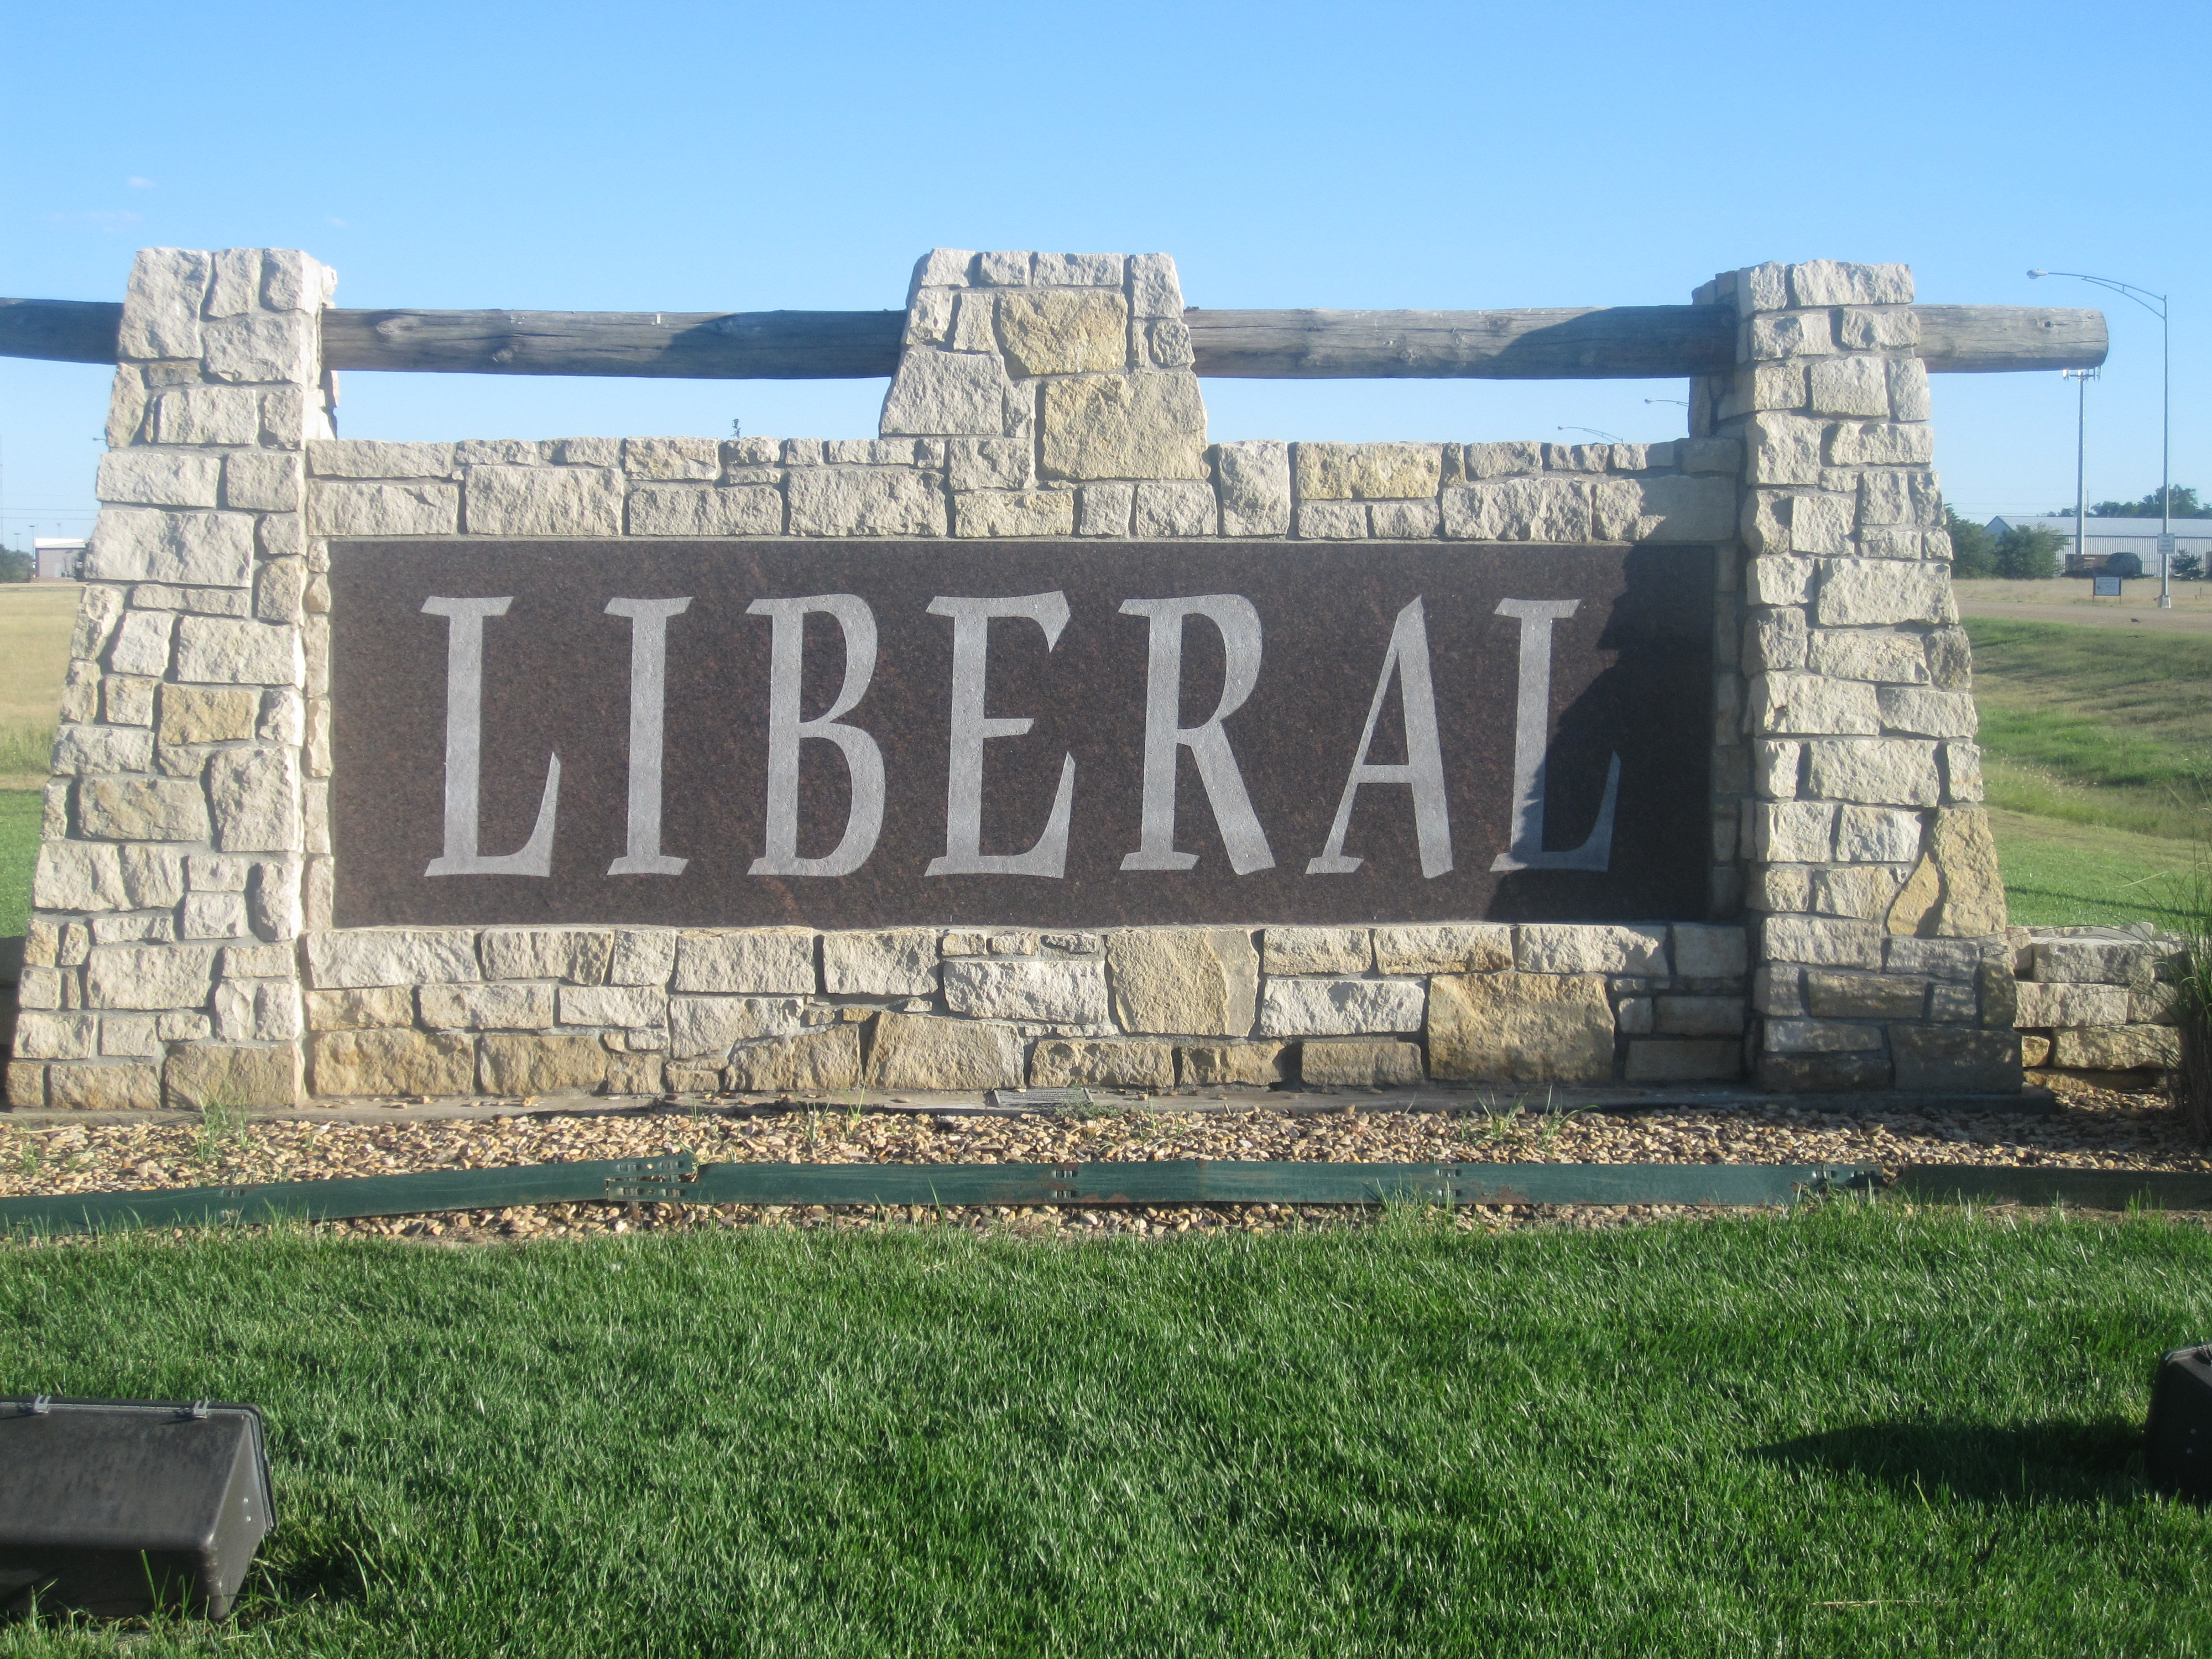 Liberal Ks To Garden City Ks